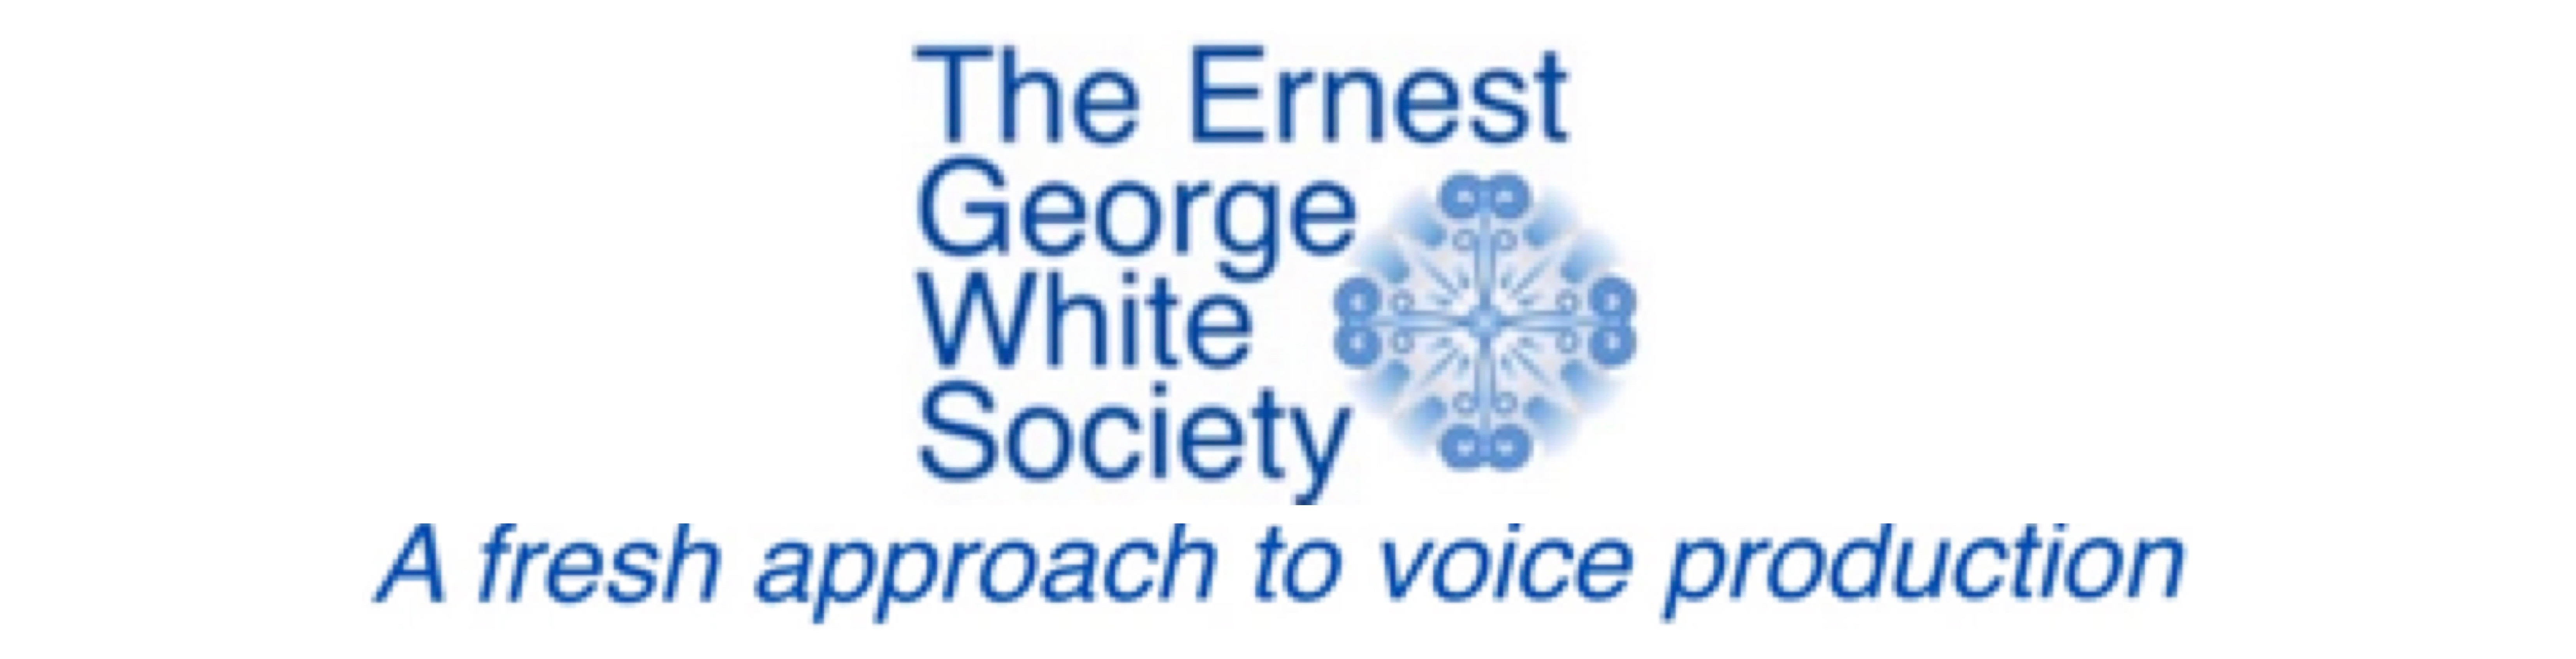 THE ERNEST GEORGE WHITE SOCIETY